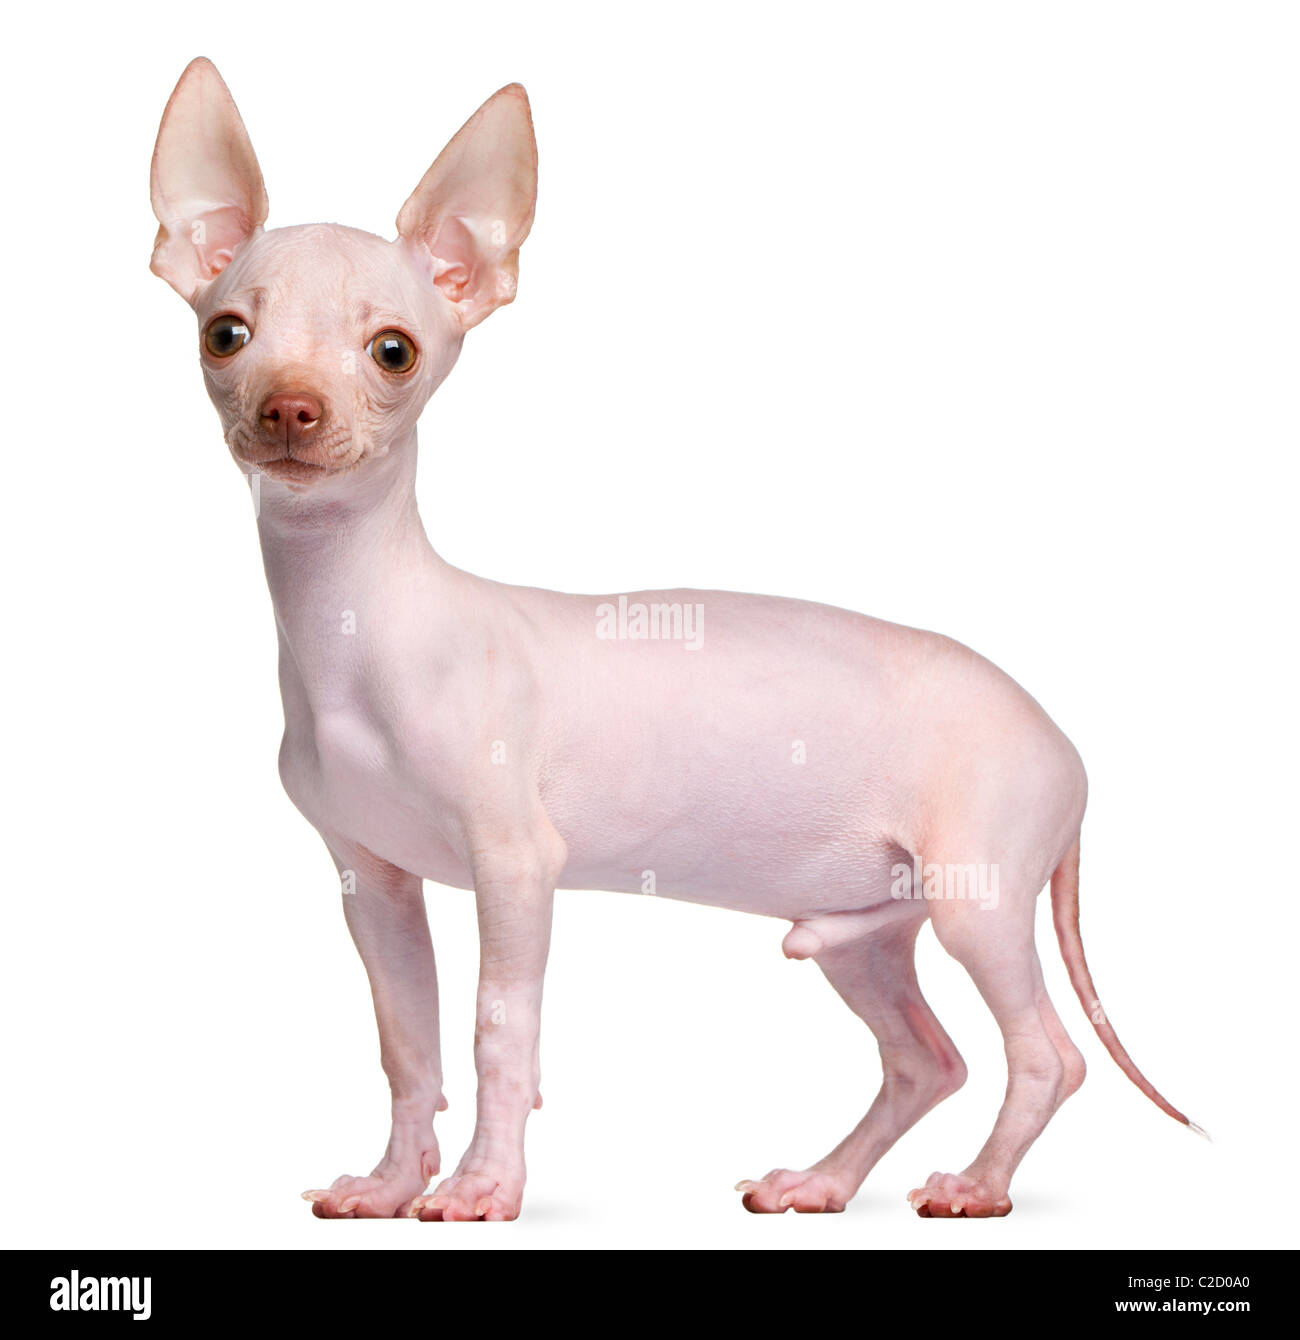 Hairless Chihuahua, 5 months old, standing in front of white background - Stock Image